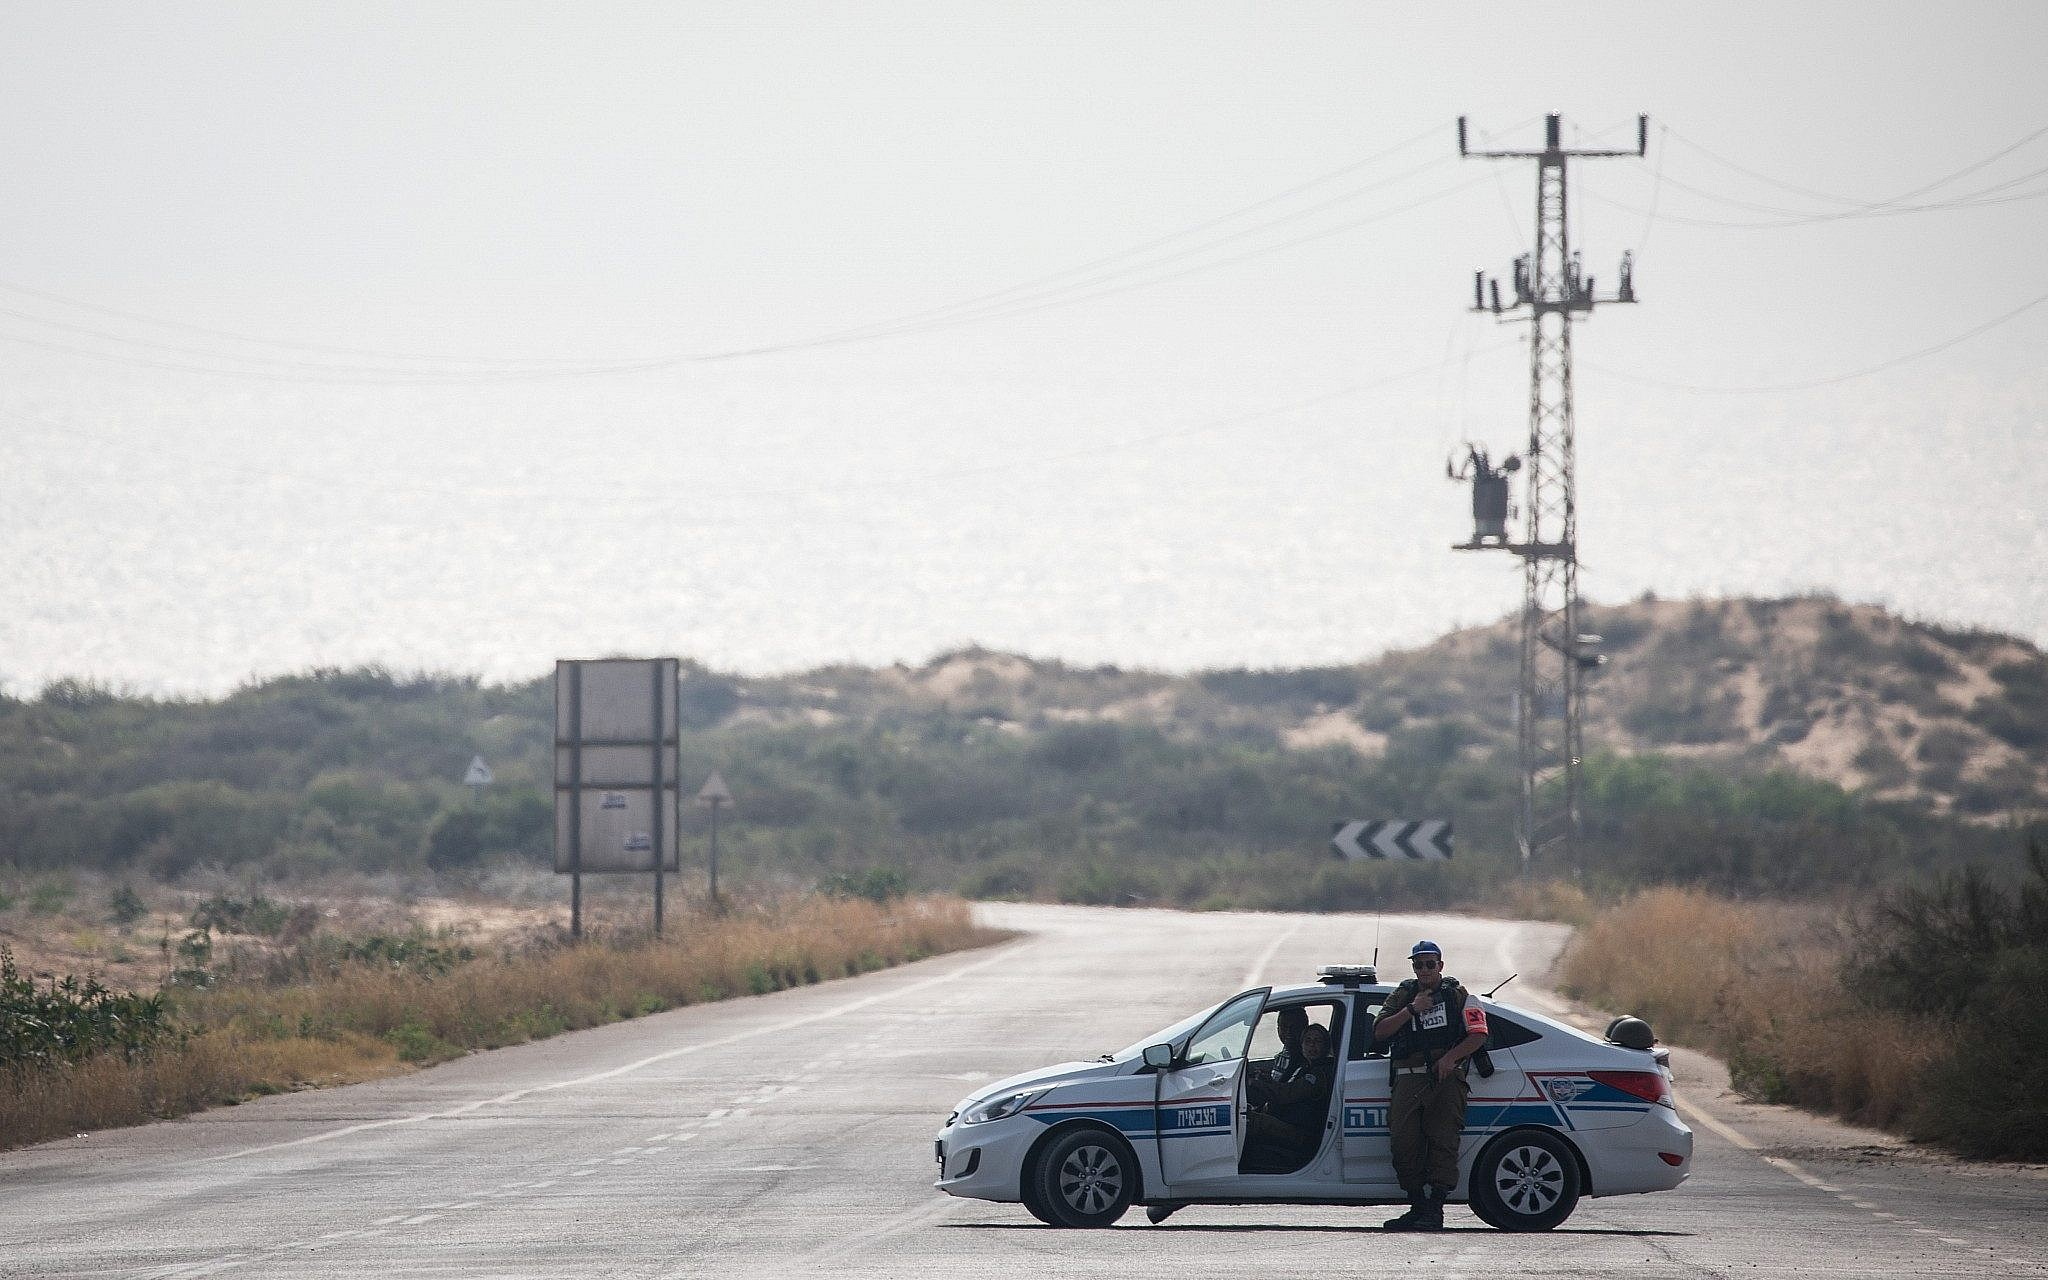 Rocket sirens wail across southern Israel as IDF strikes Gaza